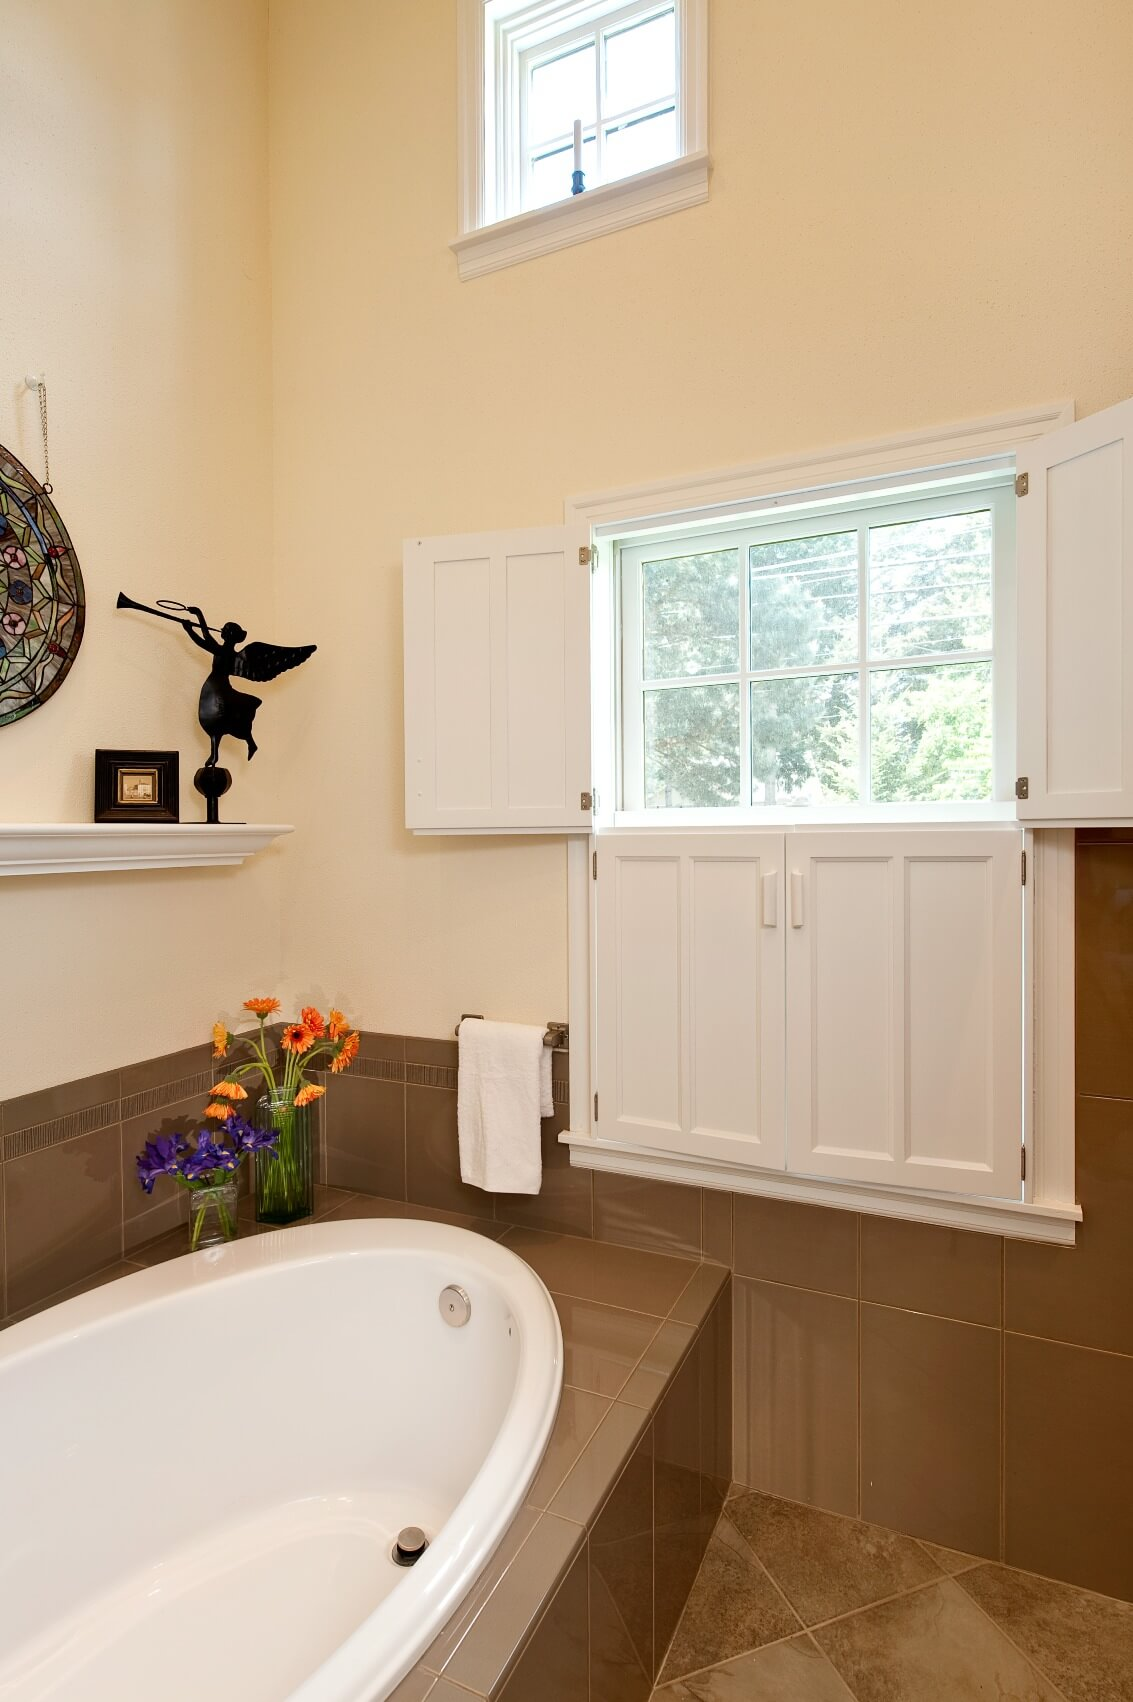 The bathroom features an extra deep soaking tub room. The shuttered window provides charm and privacy.